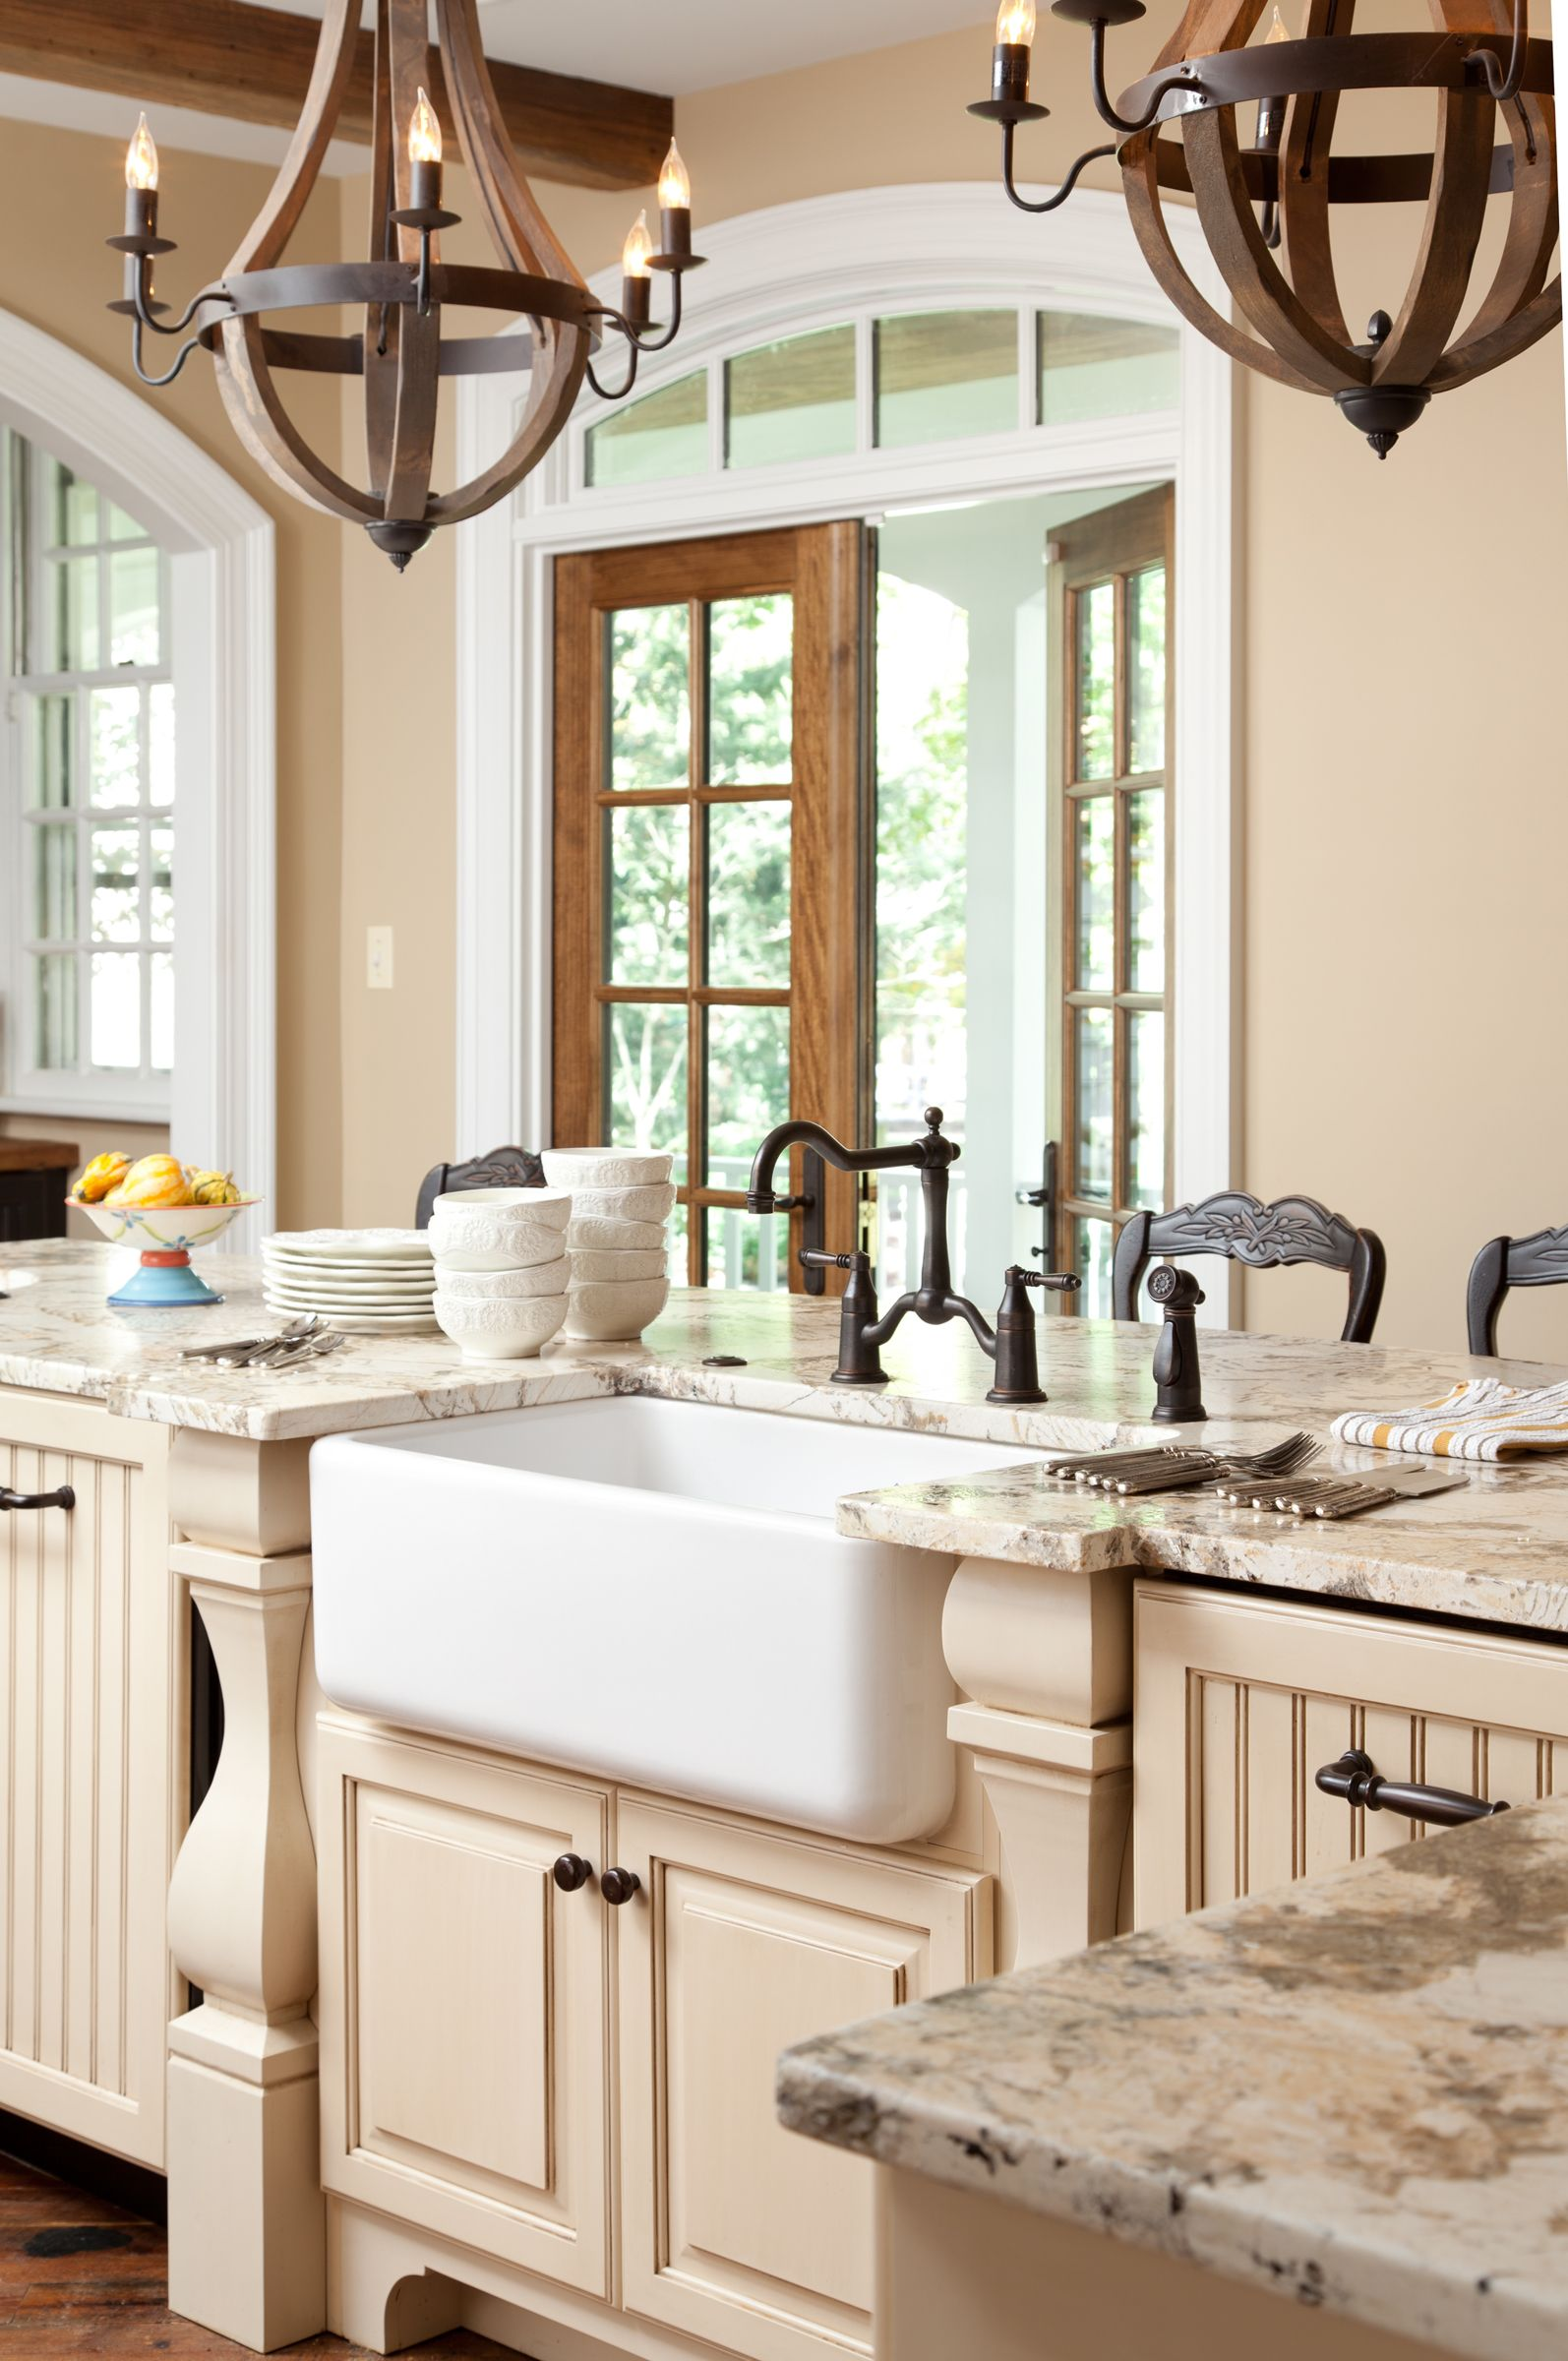 Kitchen with multiple finishes.